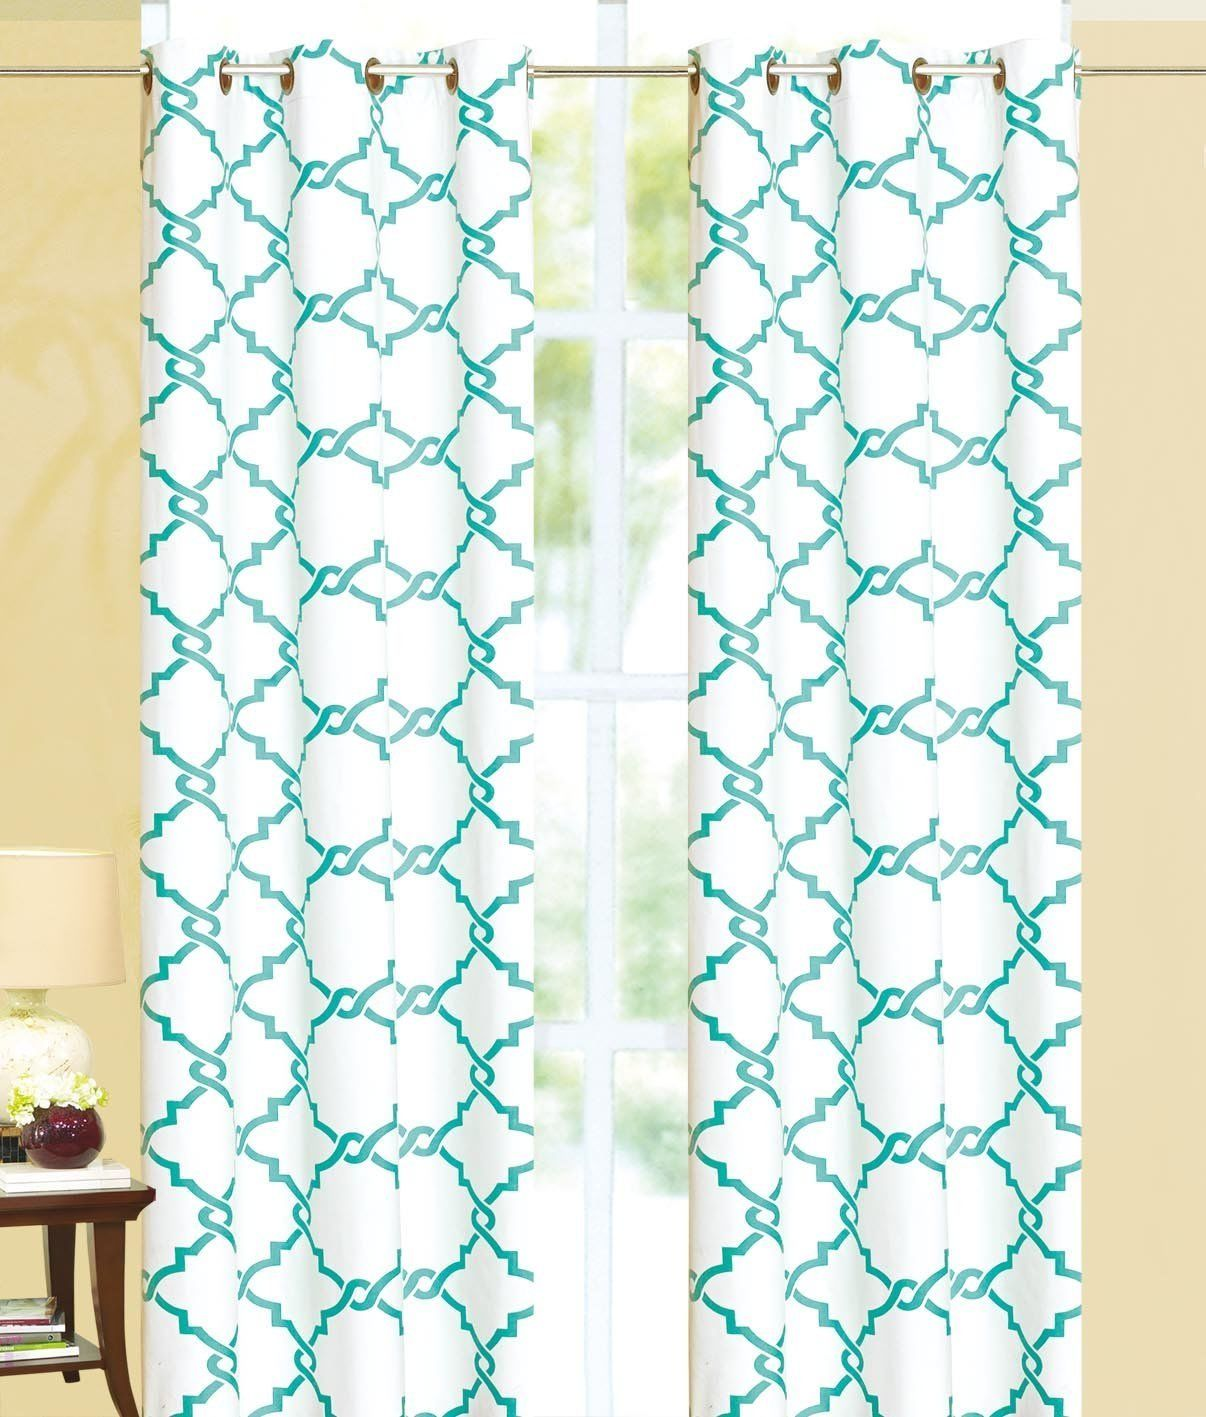 Geometric 100% Thermal Blackout Grommet Insulated Curtain Panel - Turquoise Blue